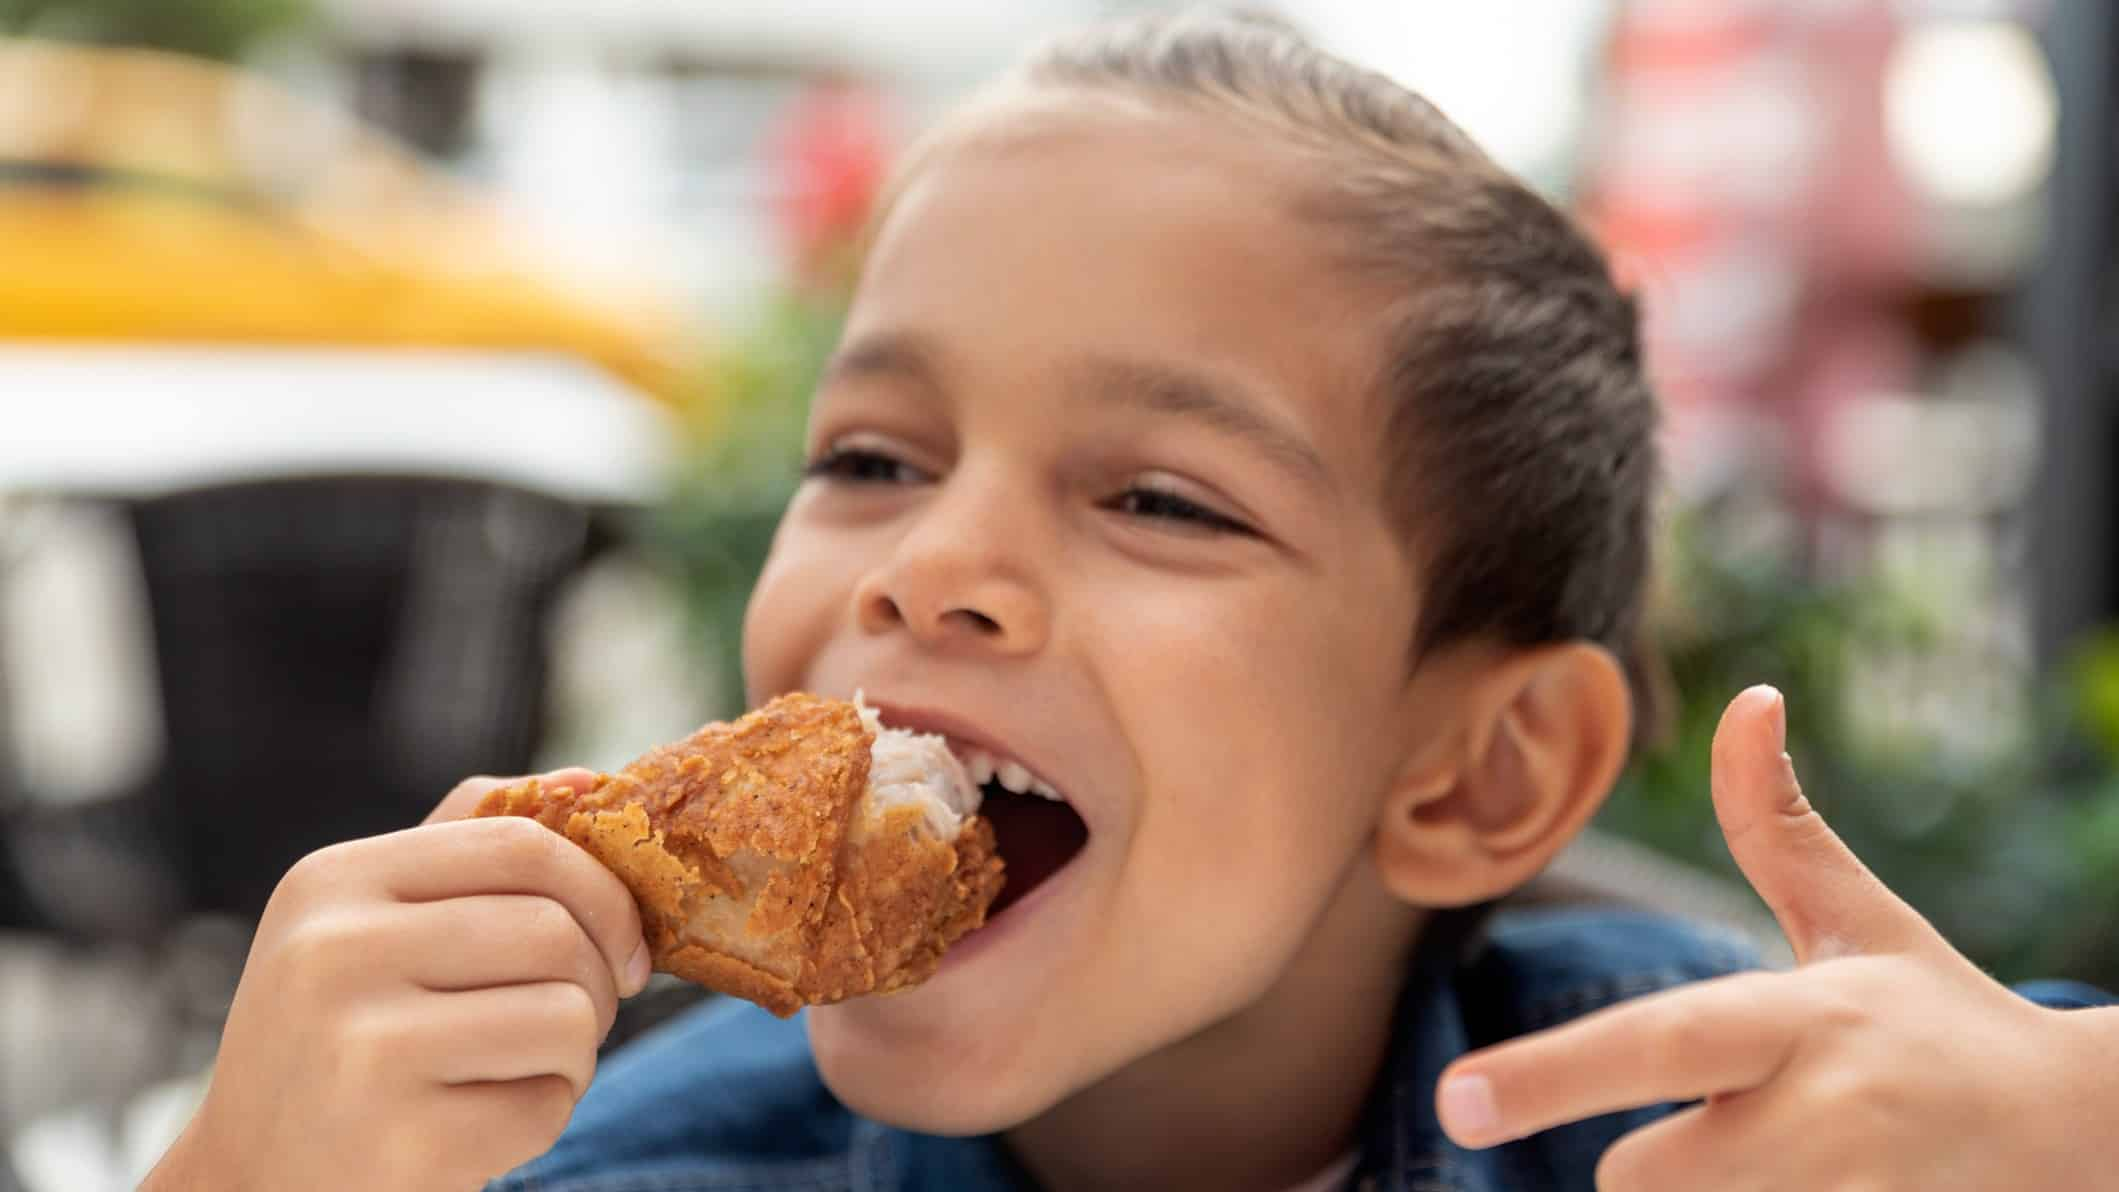 A young boy points and smiles as he eats fried chicken.